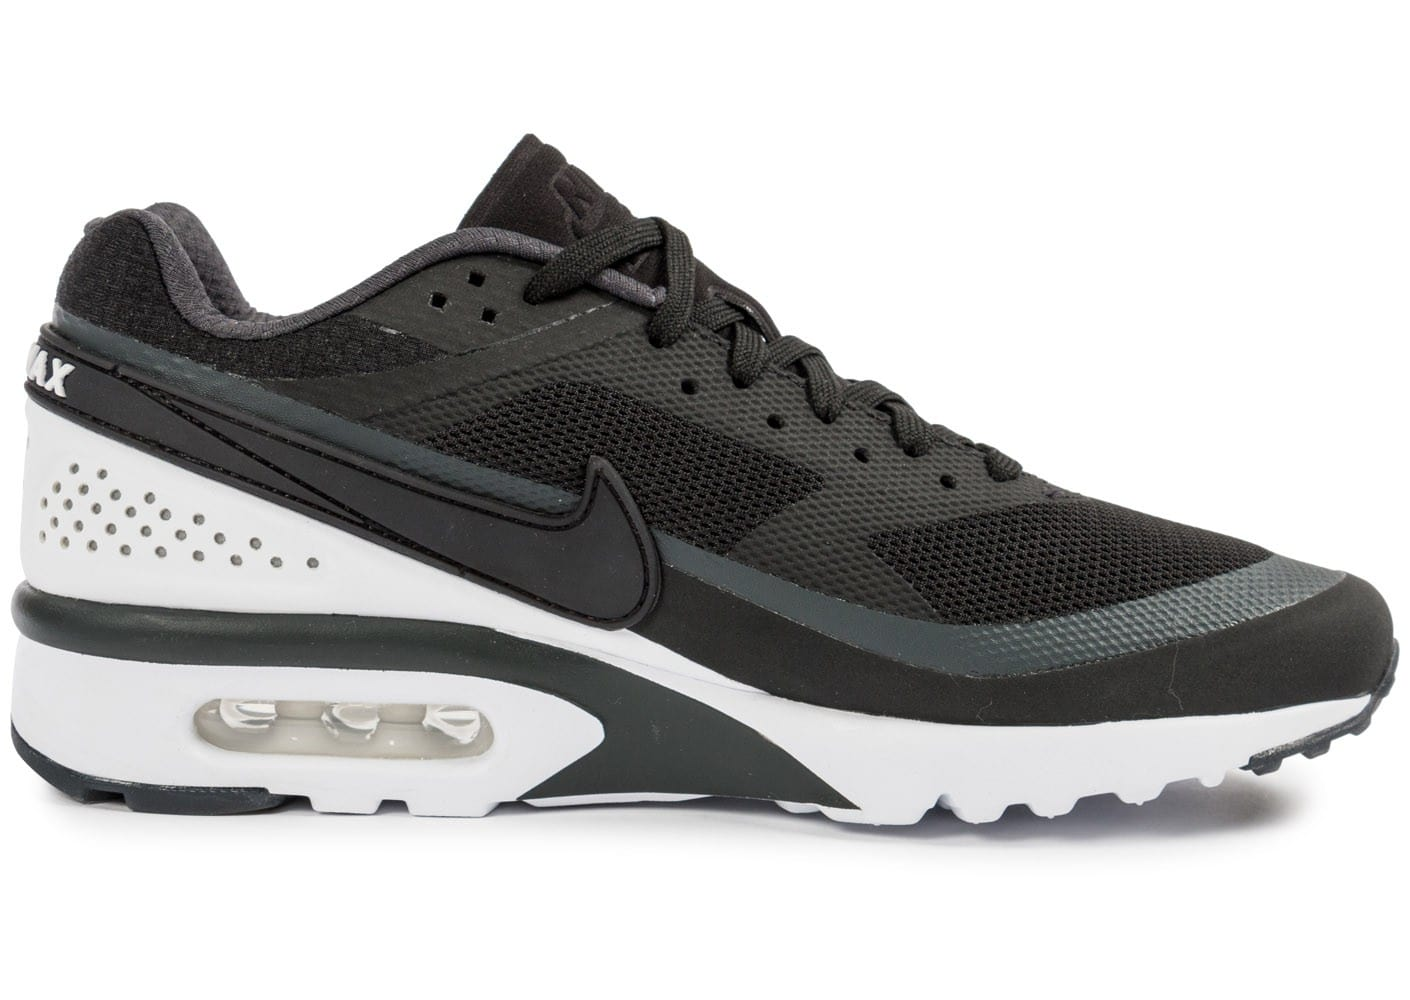 buy popular 37684 17561 chaussures nike air max bw ultra noire et blanche vue interieure